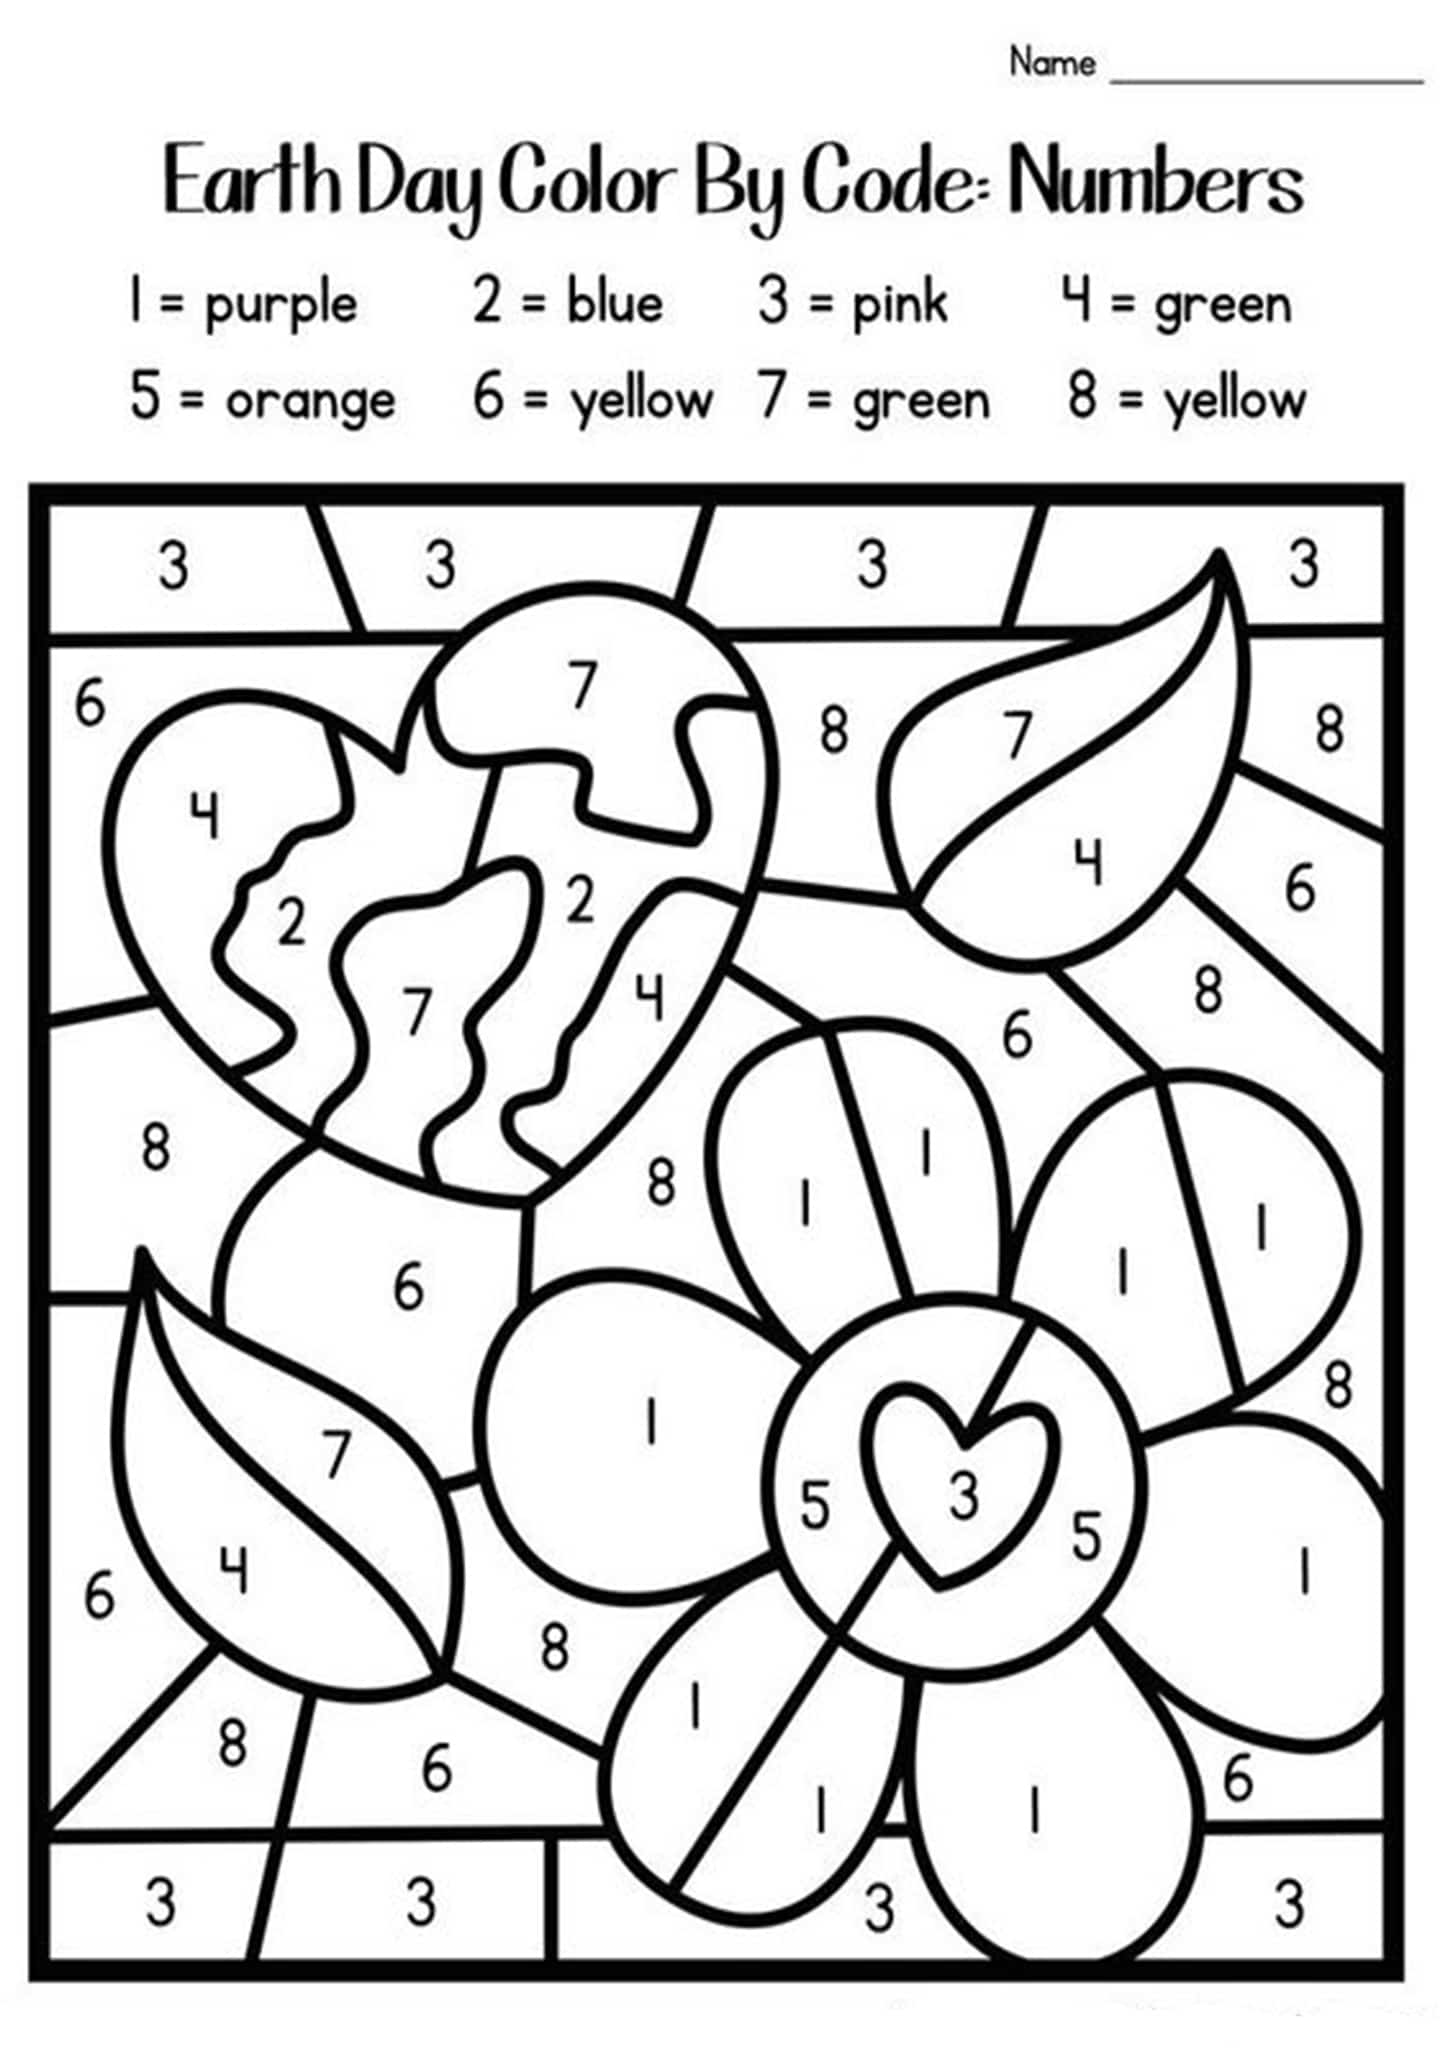 colouring by numbers worksheets free printable color by number coloring pages best by worksheets numbers colouring